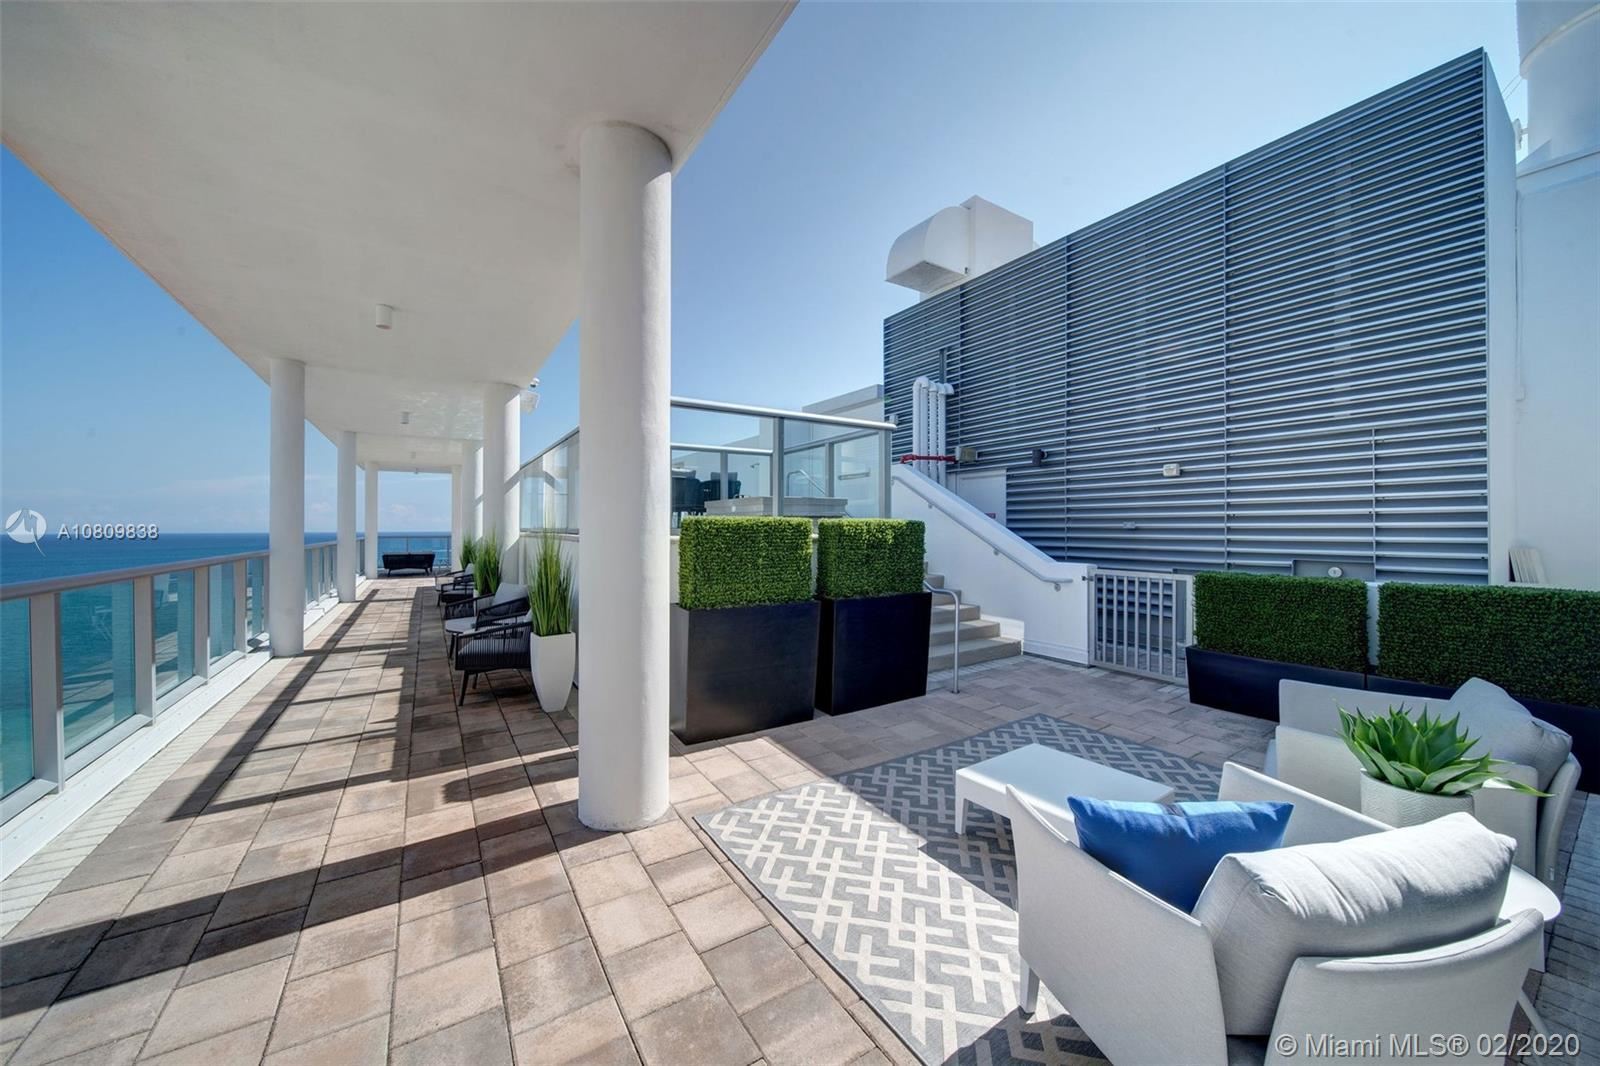 Photo 5 of Listing MLS a10809838 in 3737 Collins Ave #PH-4 Miami Beach FL 33140